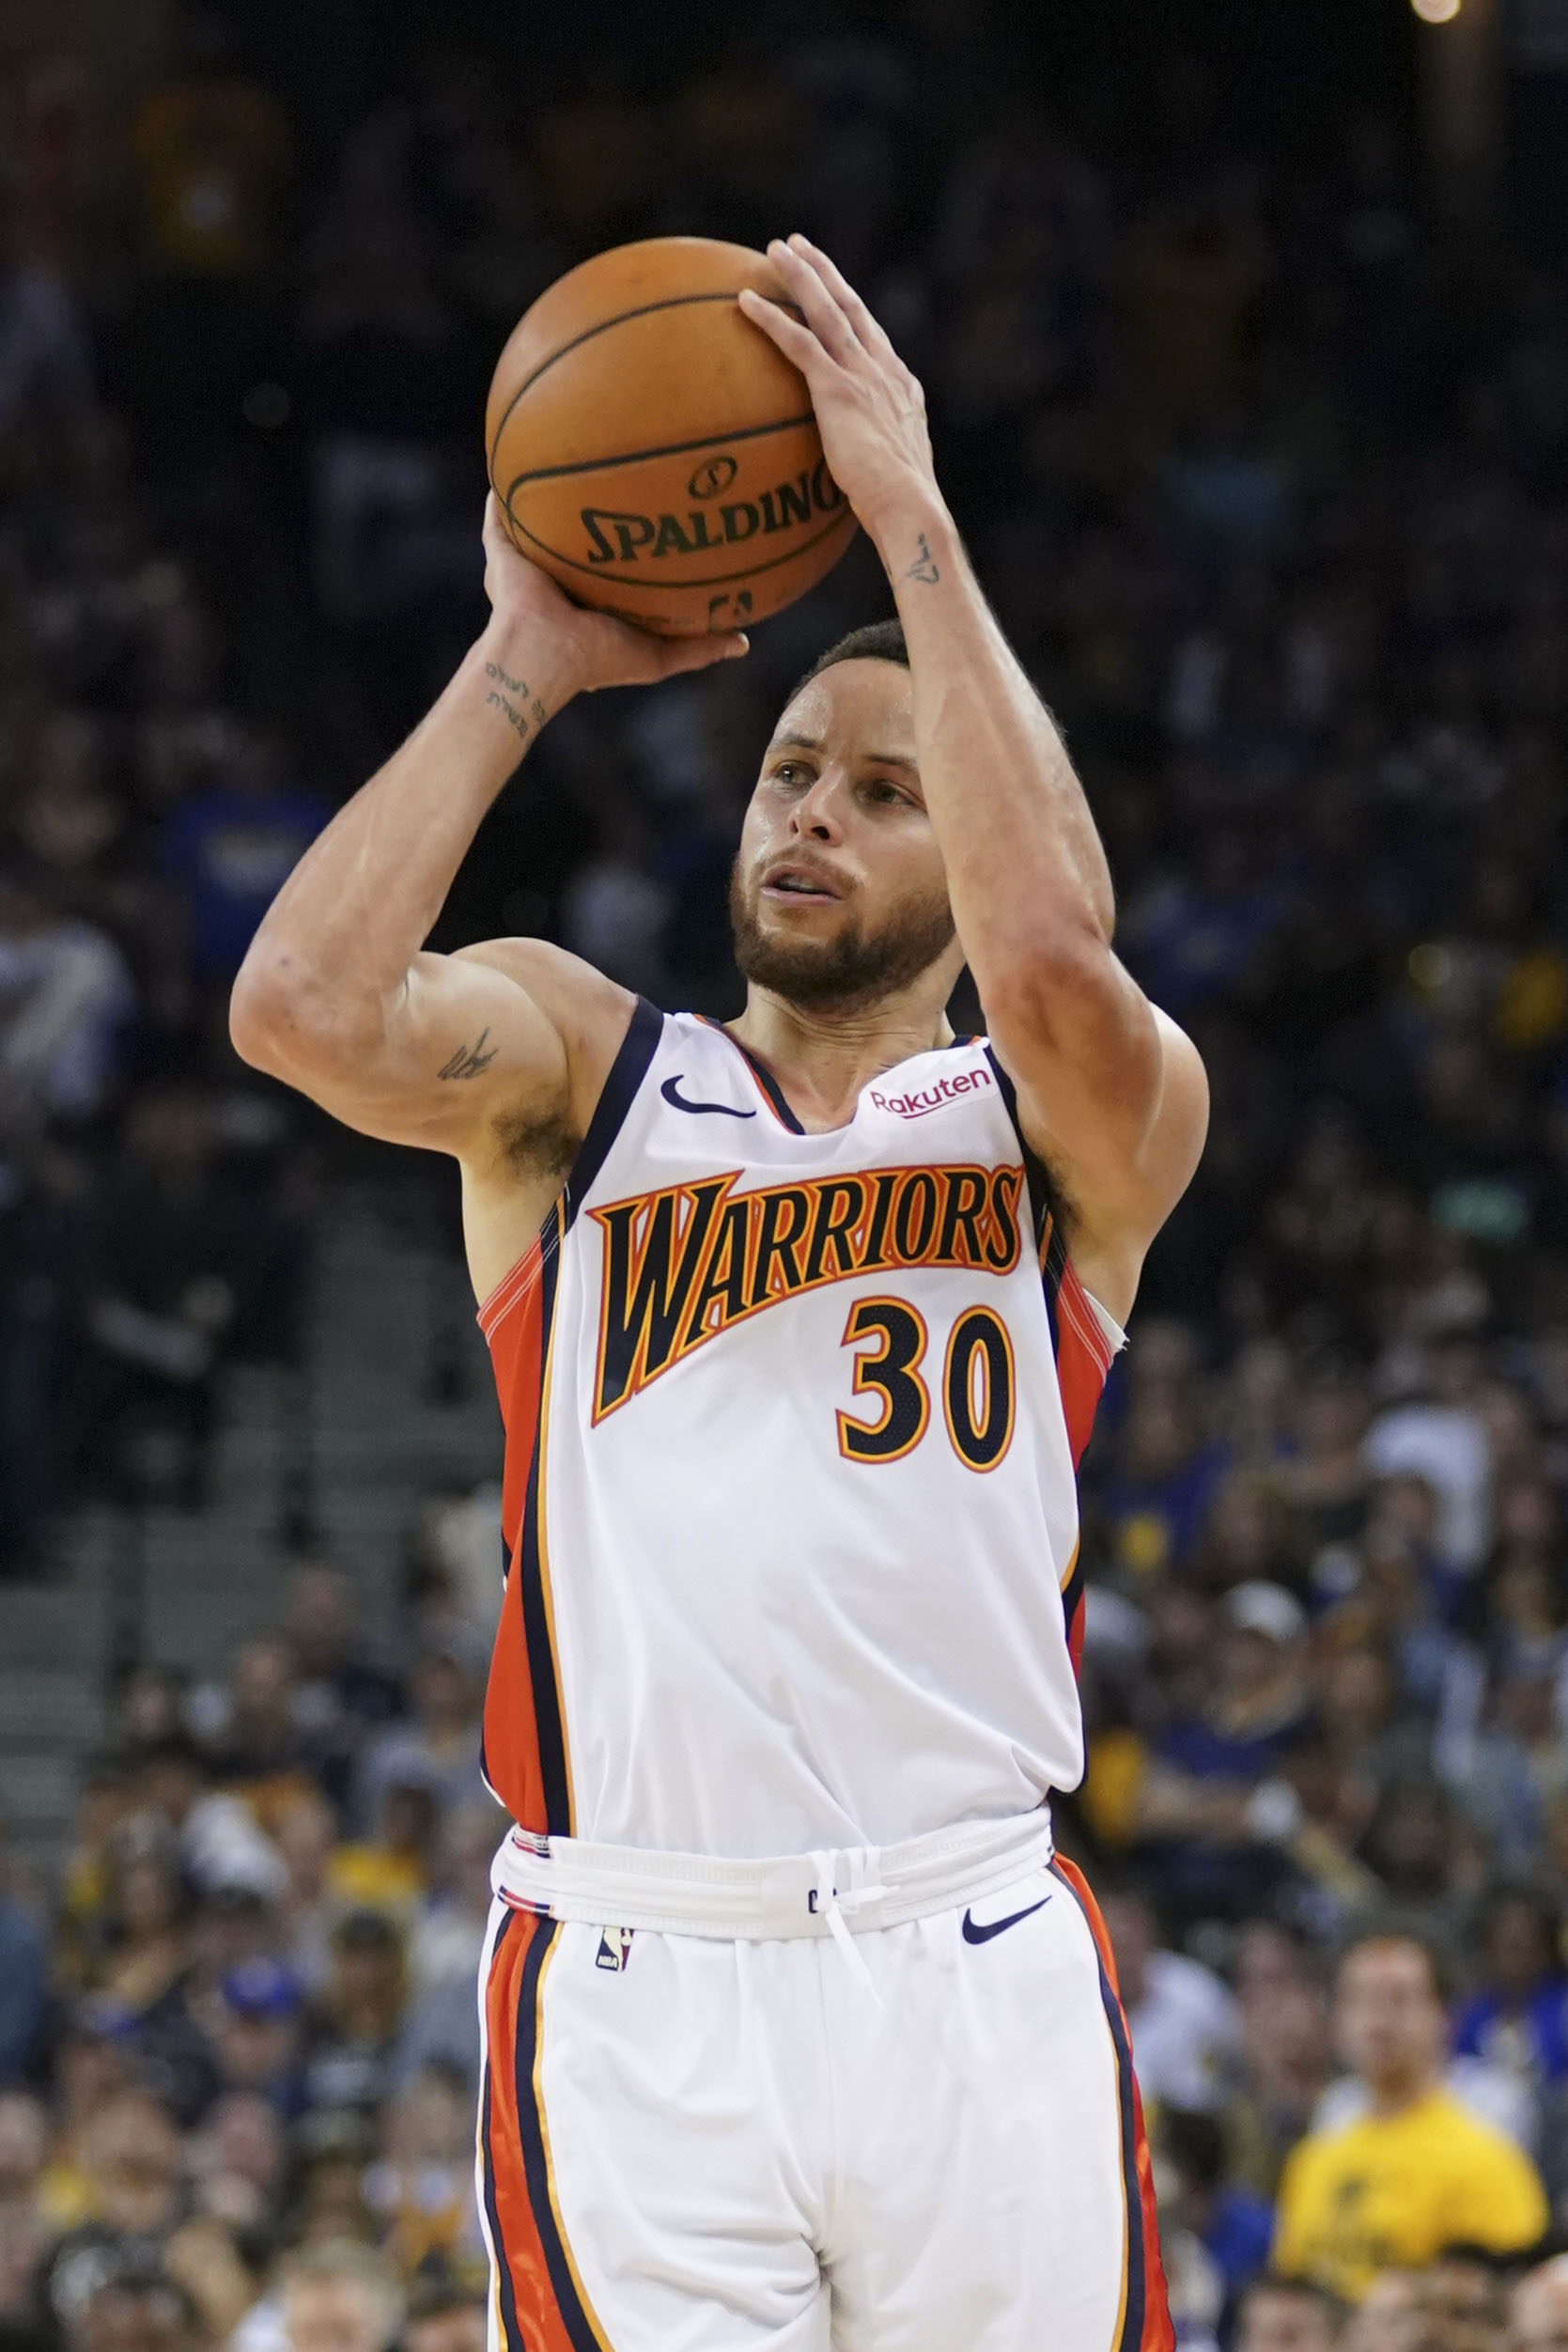 sale retailer f3ce5 d2a6d Warriors Game Breakdown: Curry leads the Dubs to victory ...